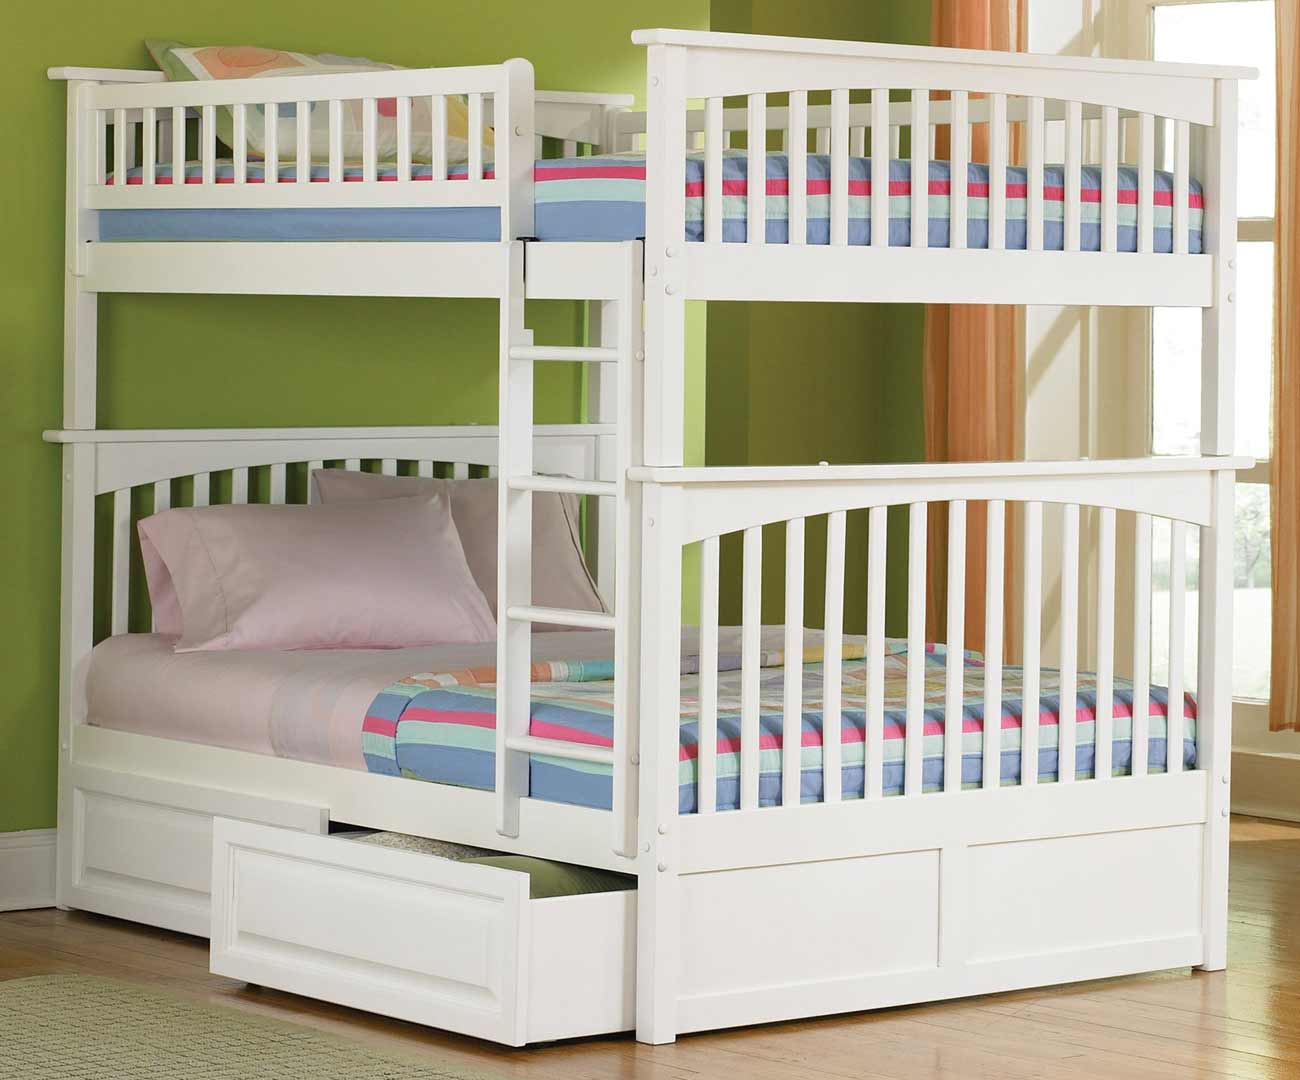 Full Size Bunk Beds Girls 1300 x 1080